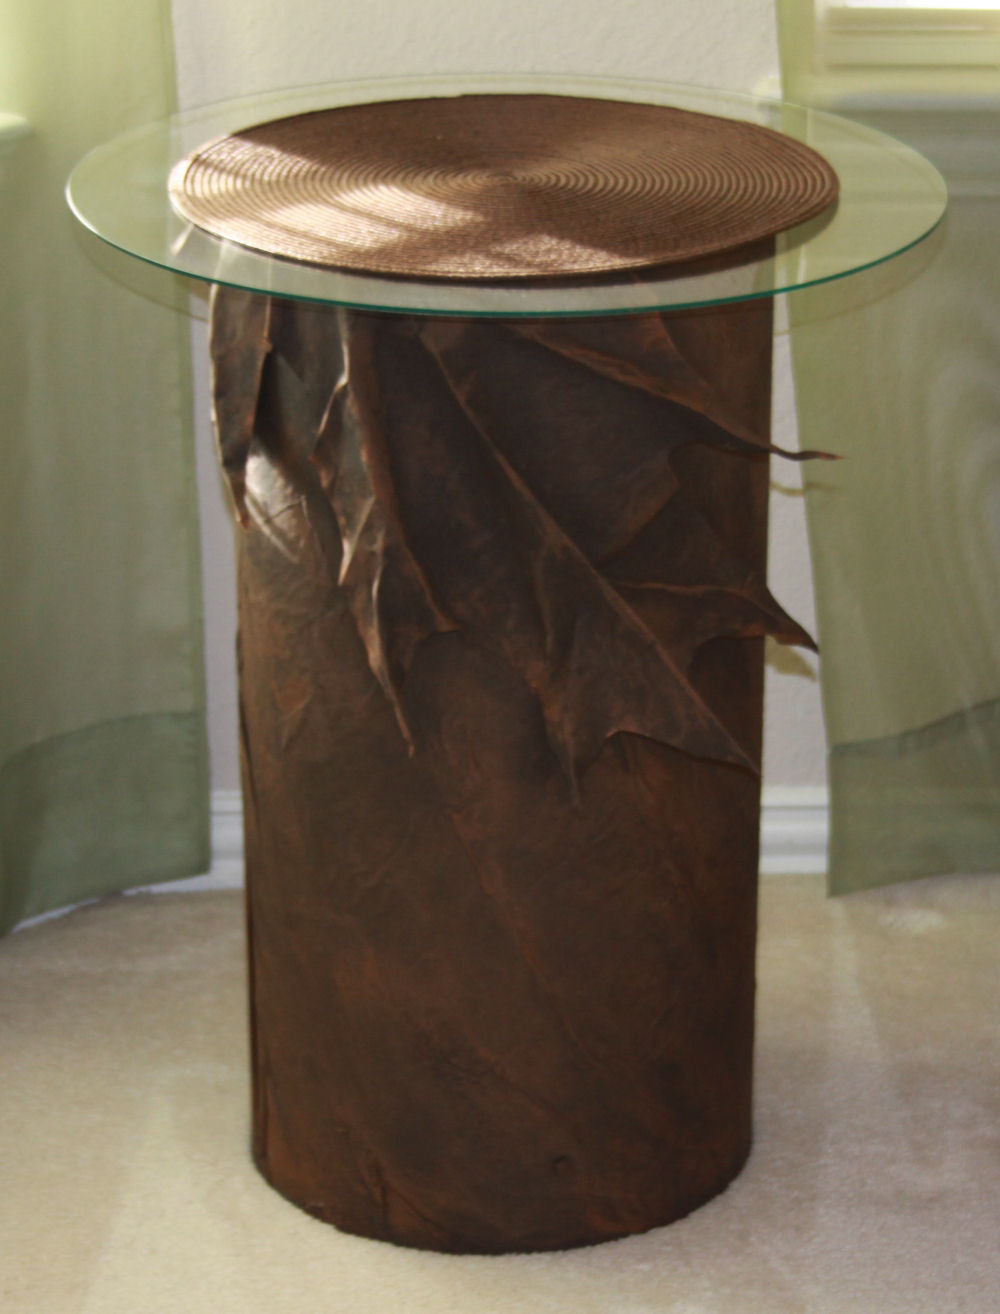 Oak Leaf End Tables, set of two 24H x 12W inches with a 20 inch glass top